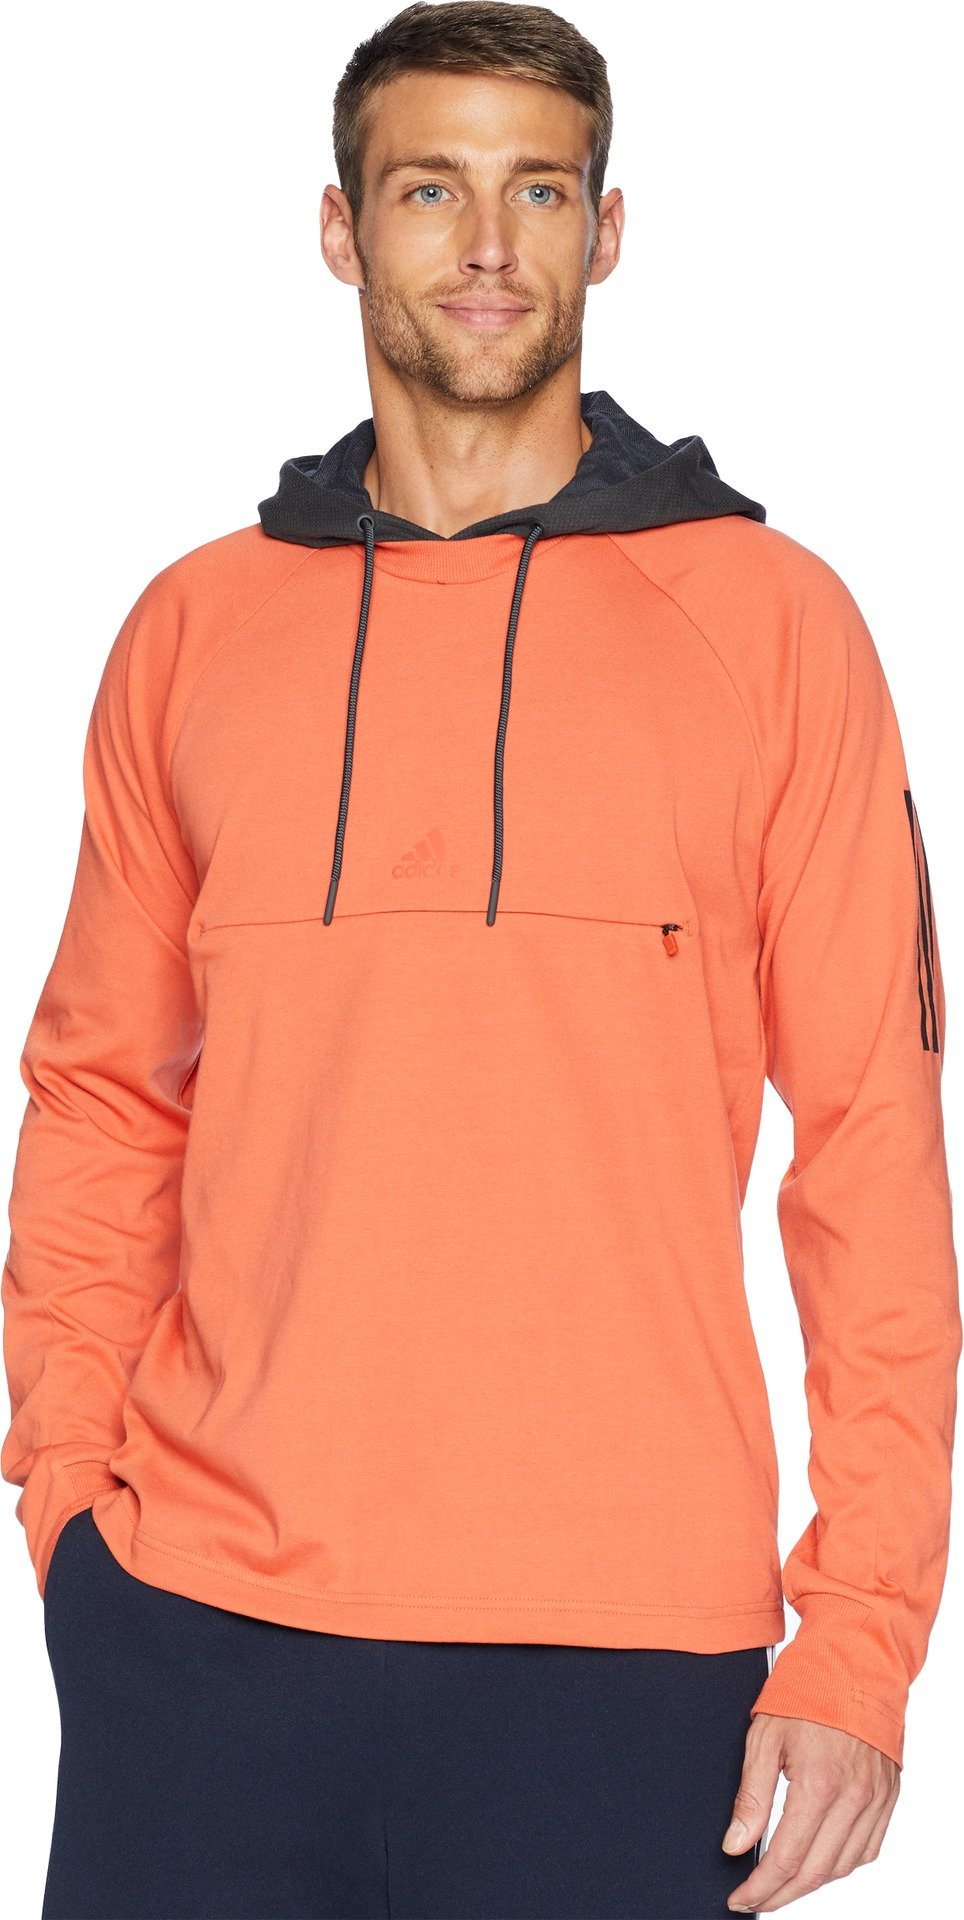 adidas Men's Sport 2 Street Lifestyle Pullover Hoodie Raw Amber/Carbon Small